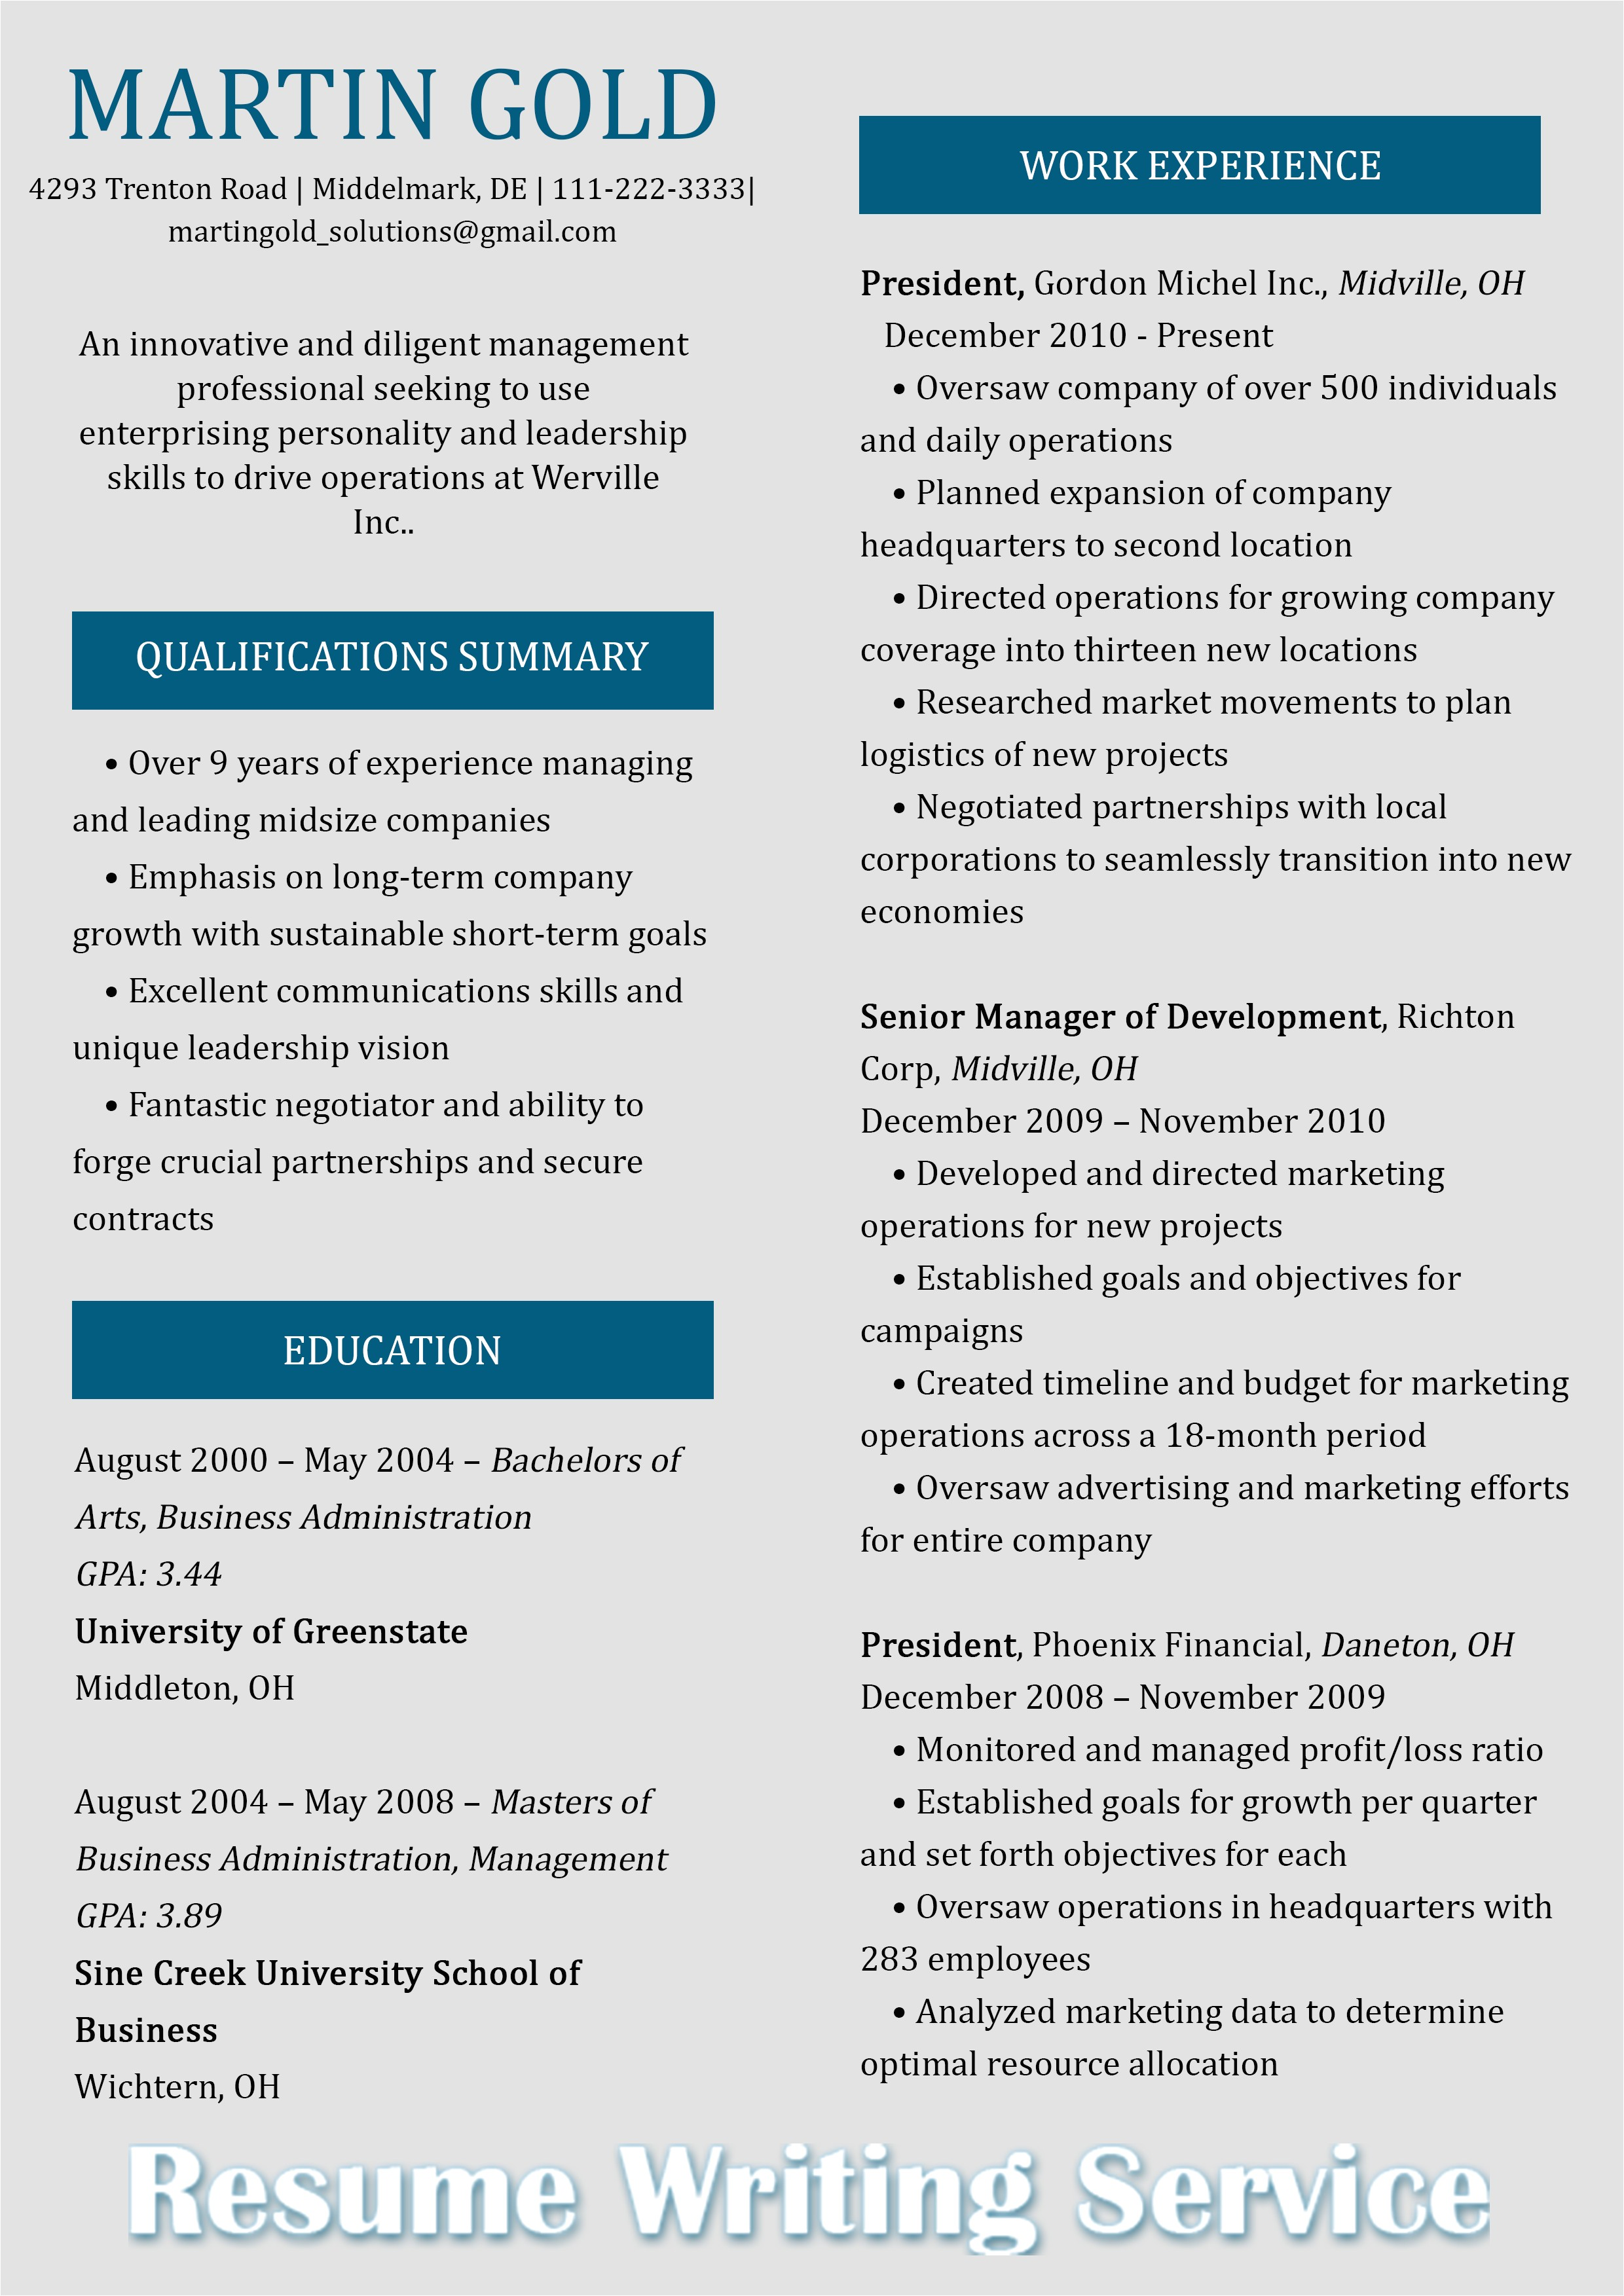 Popular Resume Templates 2018 Best Resume format 2018 with Genuine Reasons to Follow